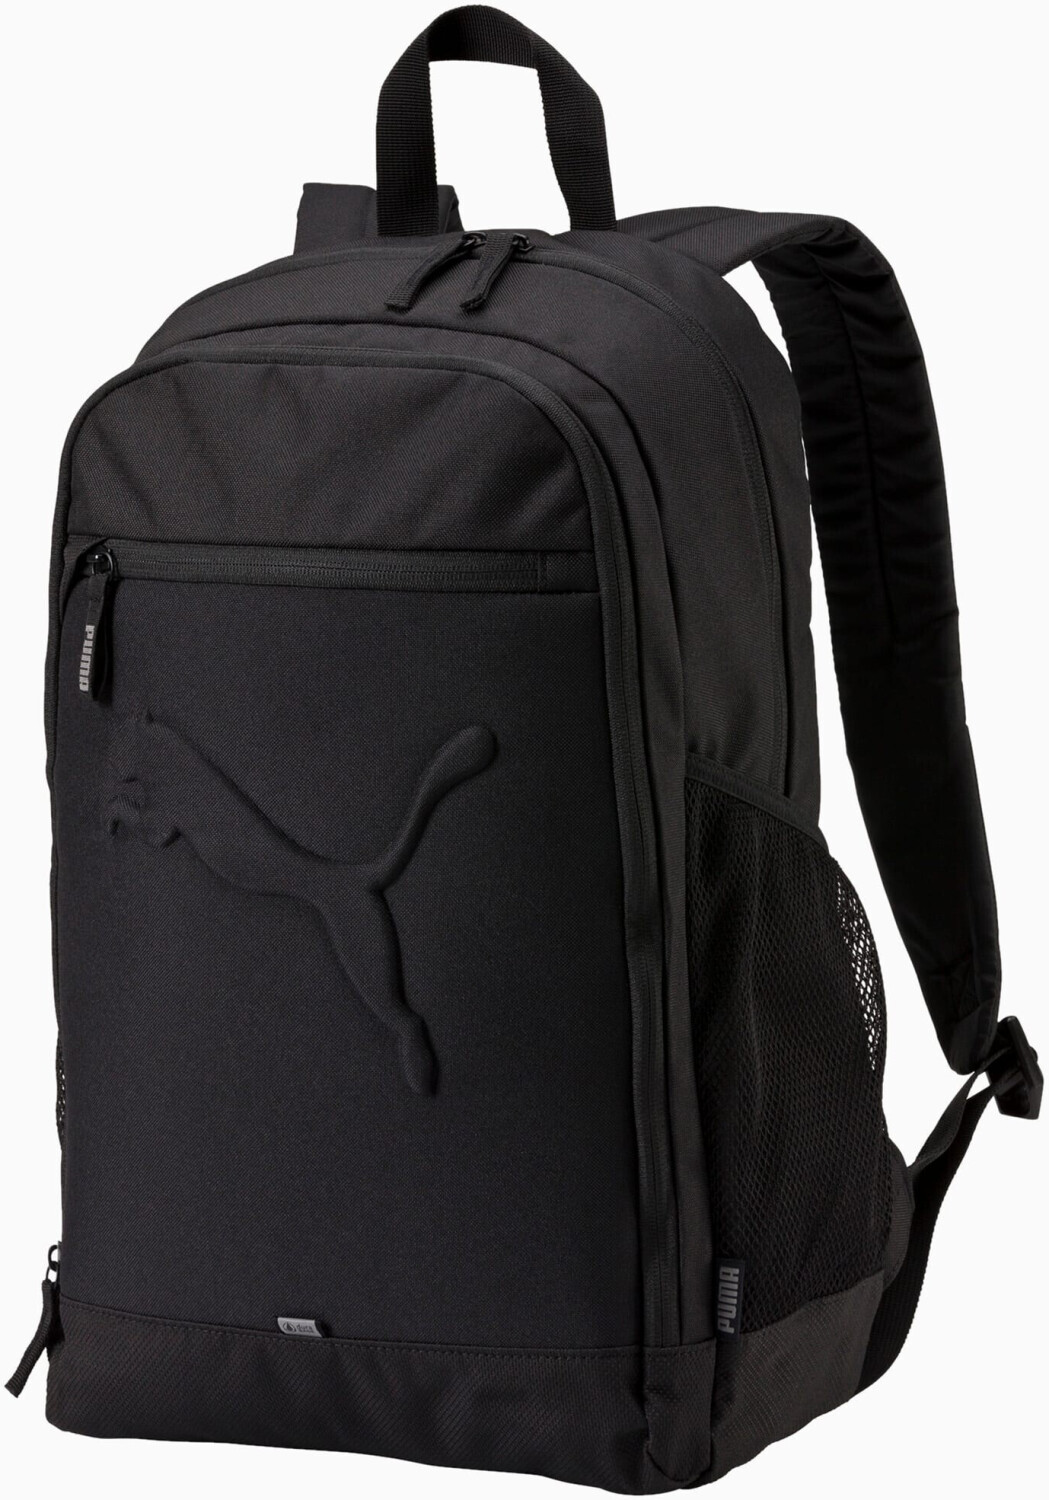 Puma Sports Buzz Backpack black (73581)